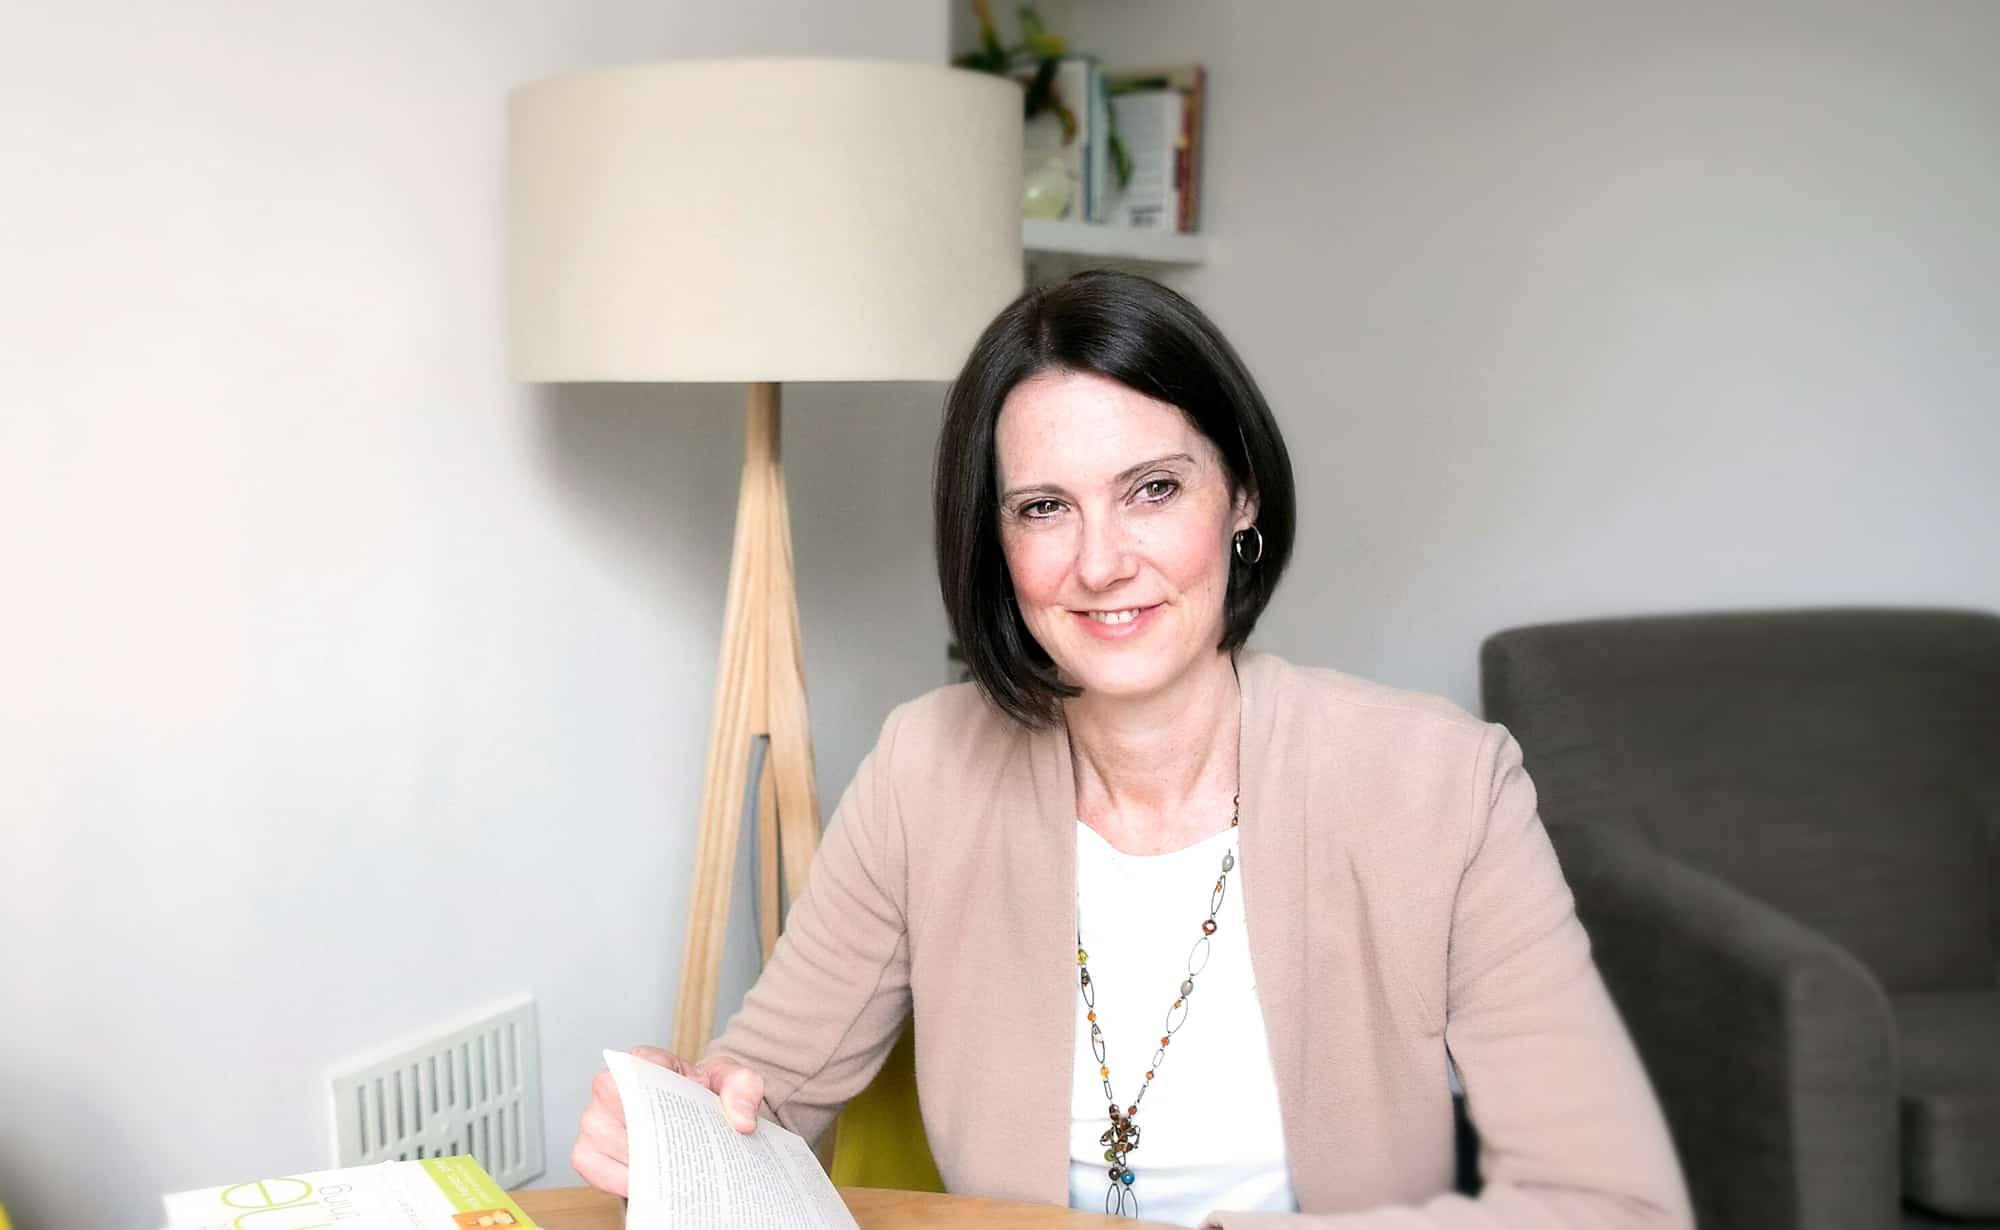 Meet Fiona Day - Leadership Coach for Doctors